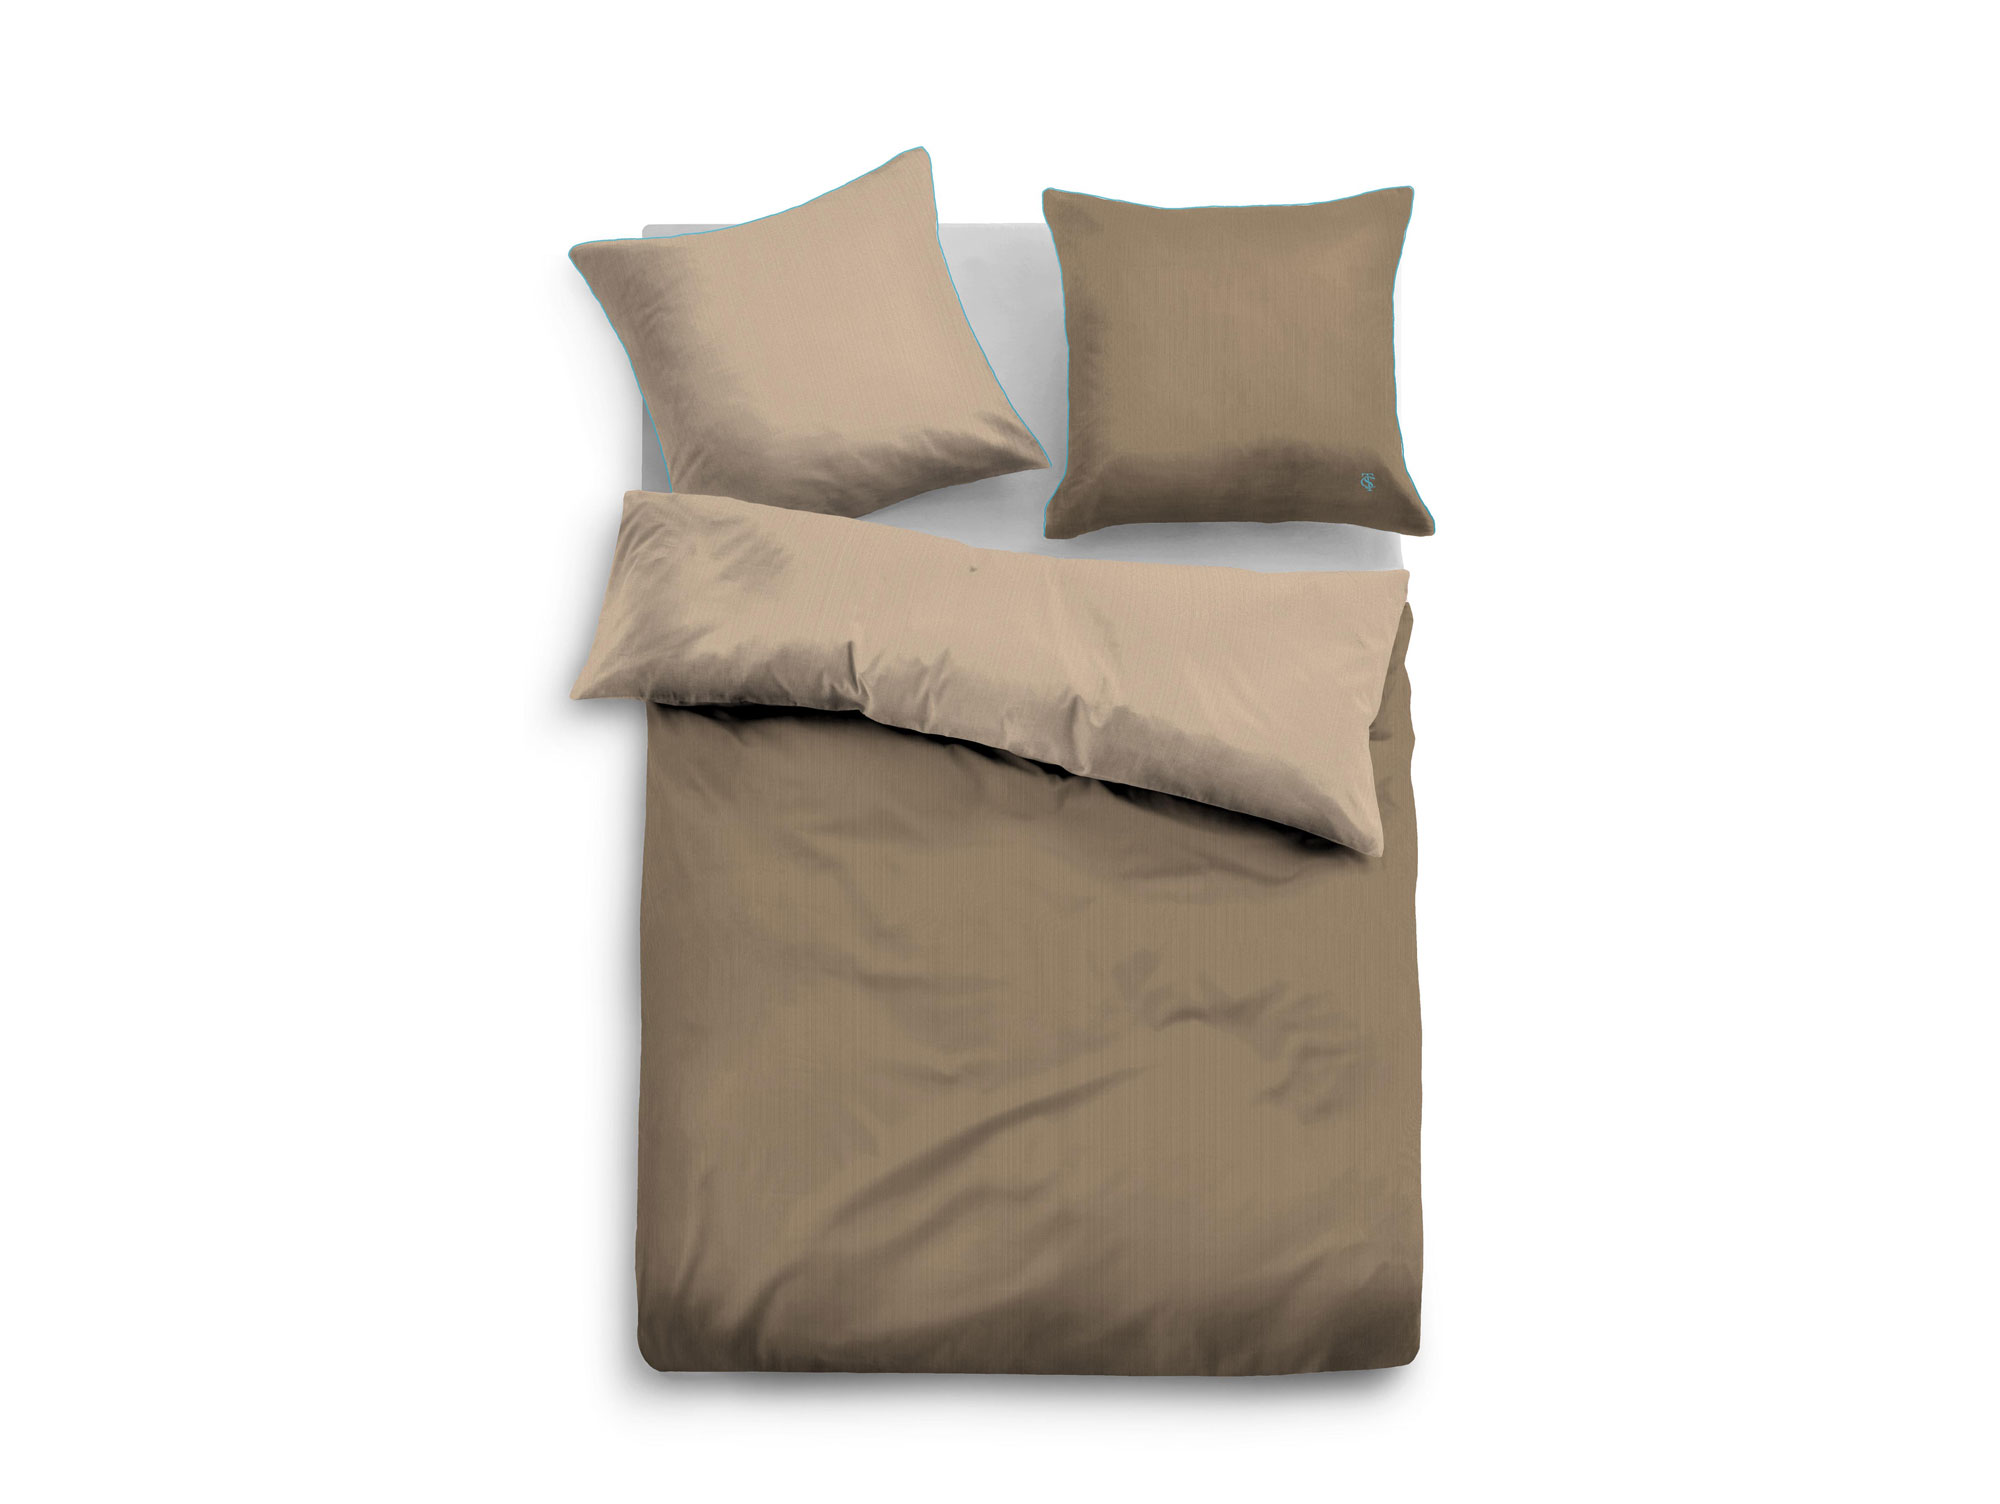 Tom Tailor Bettwäsche Tom Tailor Bettwäsche Satin Bed Linen 135x200 4380x80